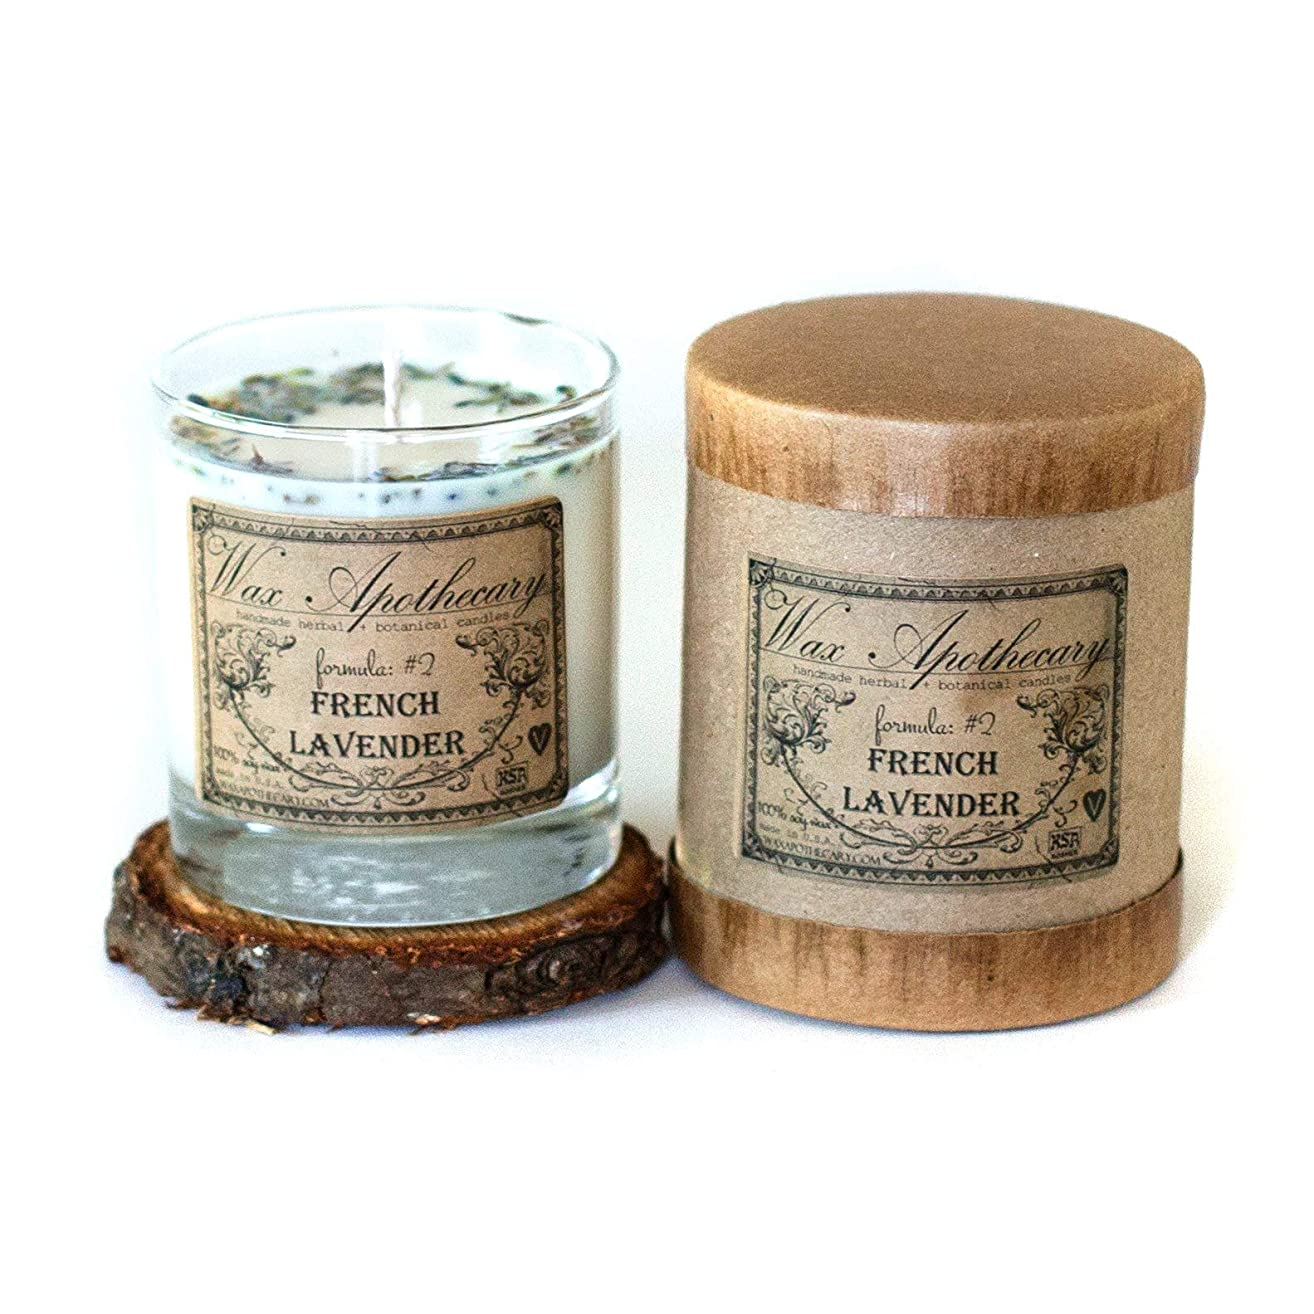 French Lavender 7oz Botanical Candle in Scotch Glass